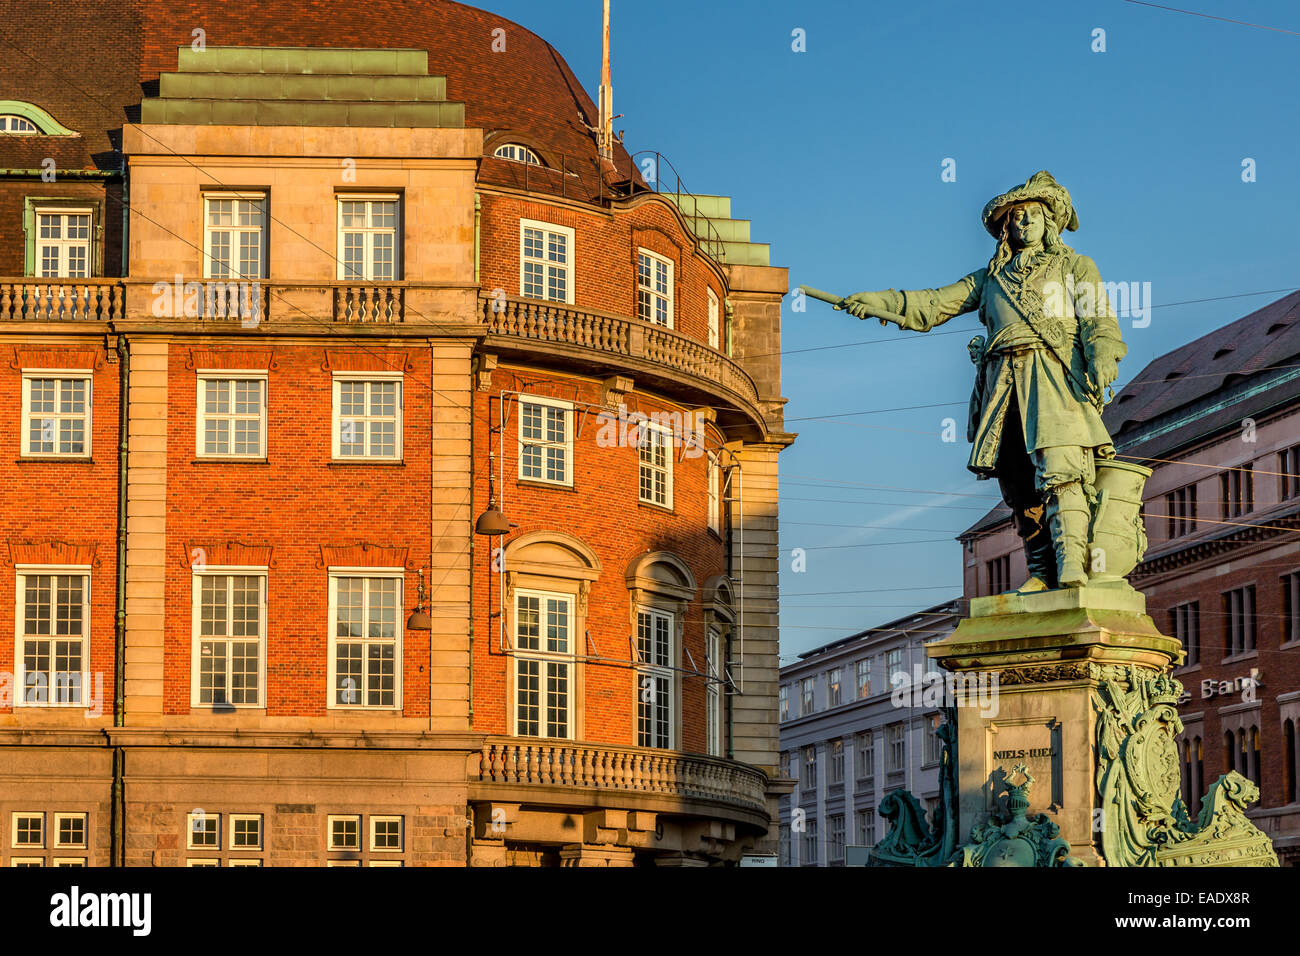 Statue of the naval hero and admiral Niels Juel (1629-97) viewing over Holmen's Channel, Copenhagen, Denmark - Stock Image